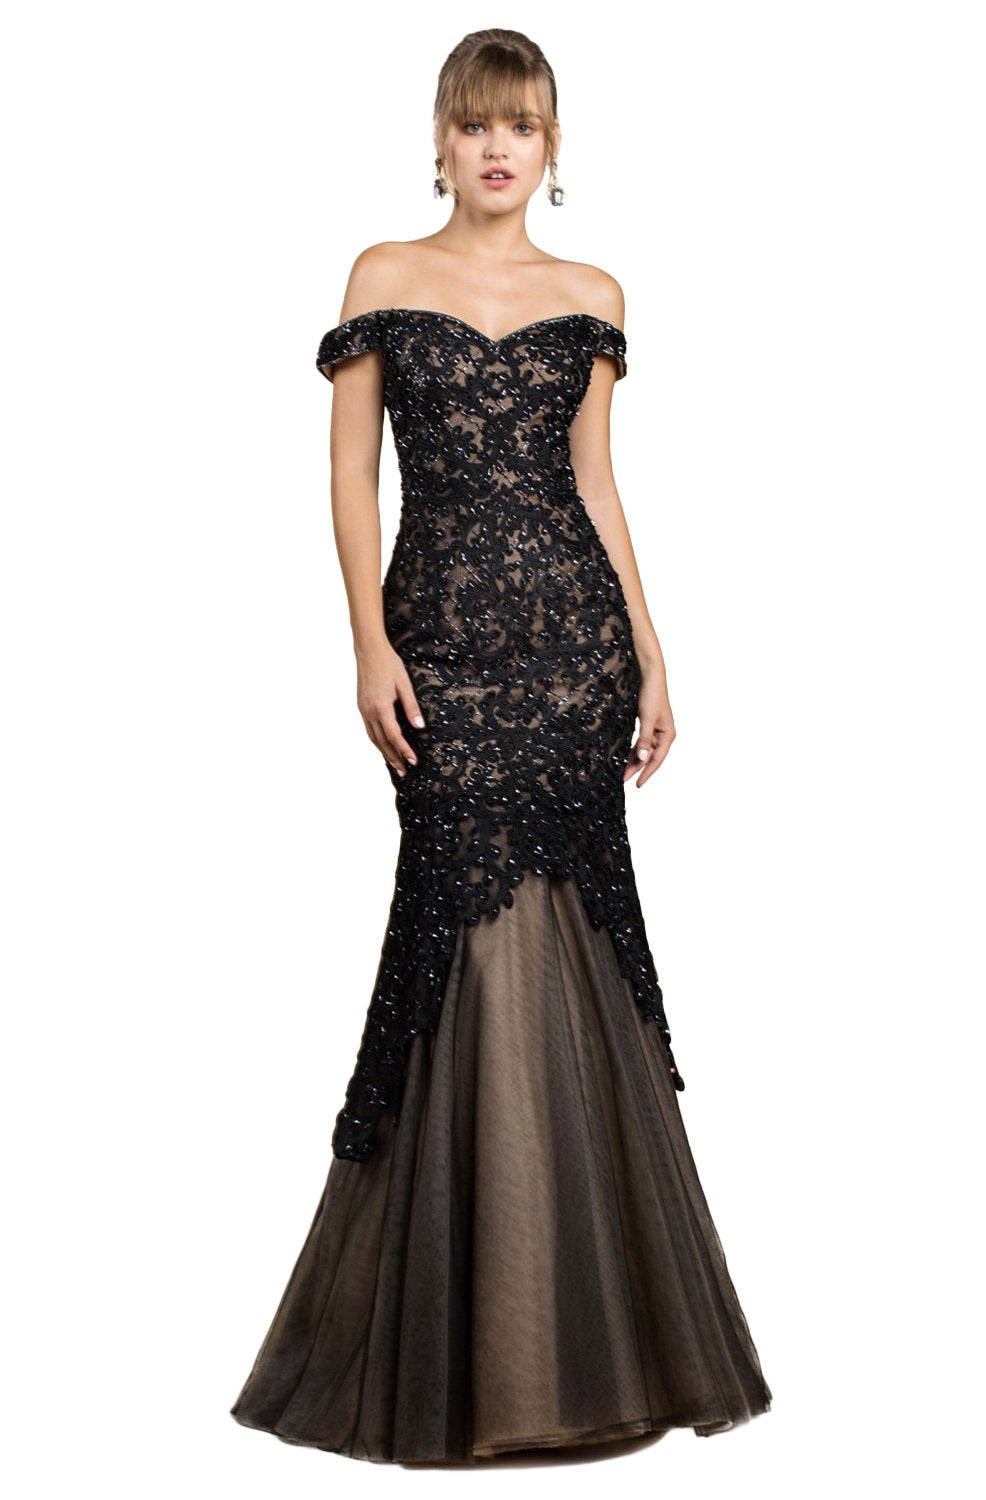 Cinderella Divine - A0401 Off Shoulder Lace Overlay Tulle Mermaid Gown In Black and Neutral